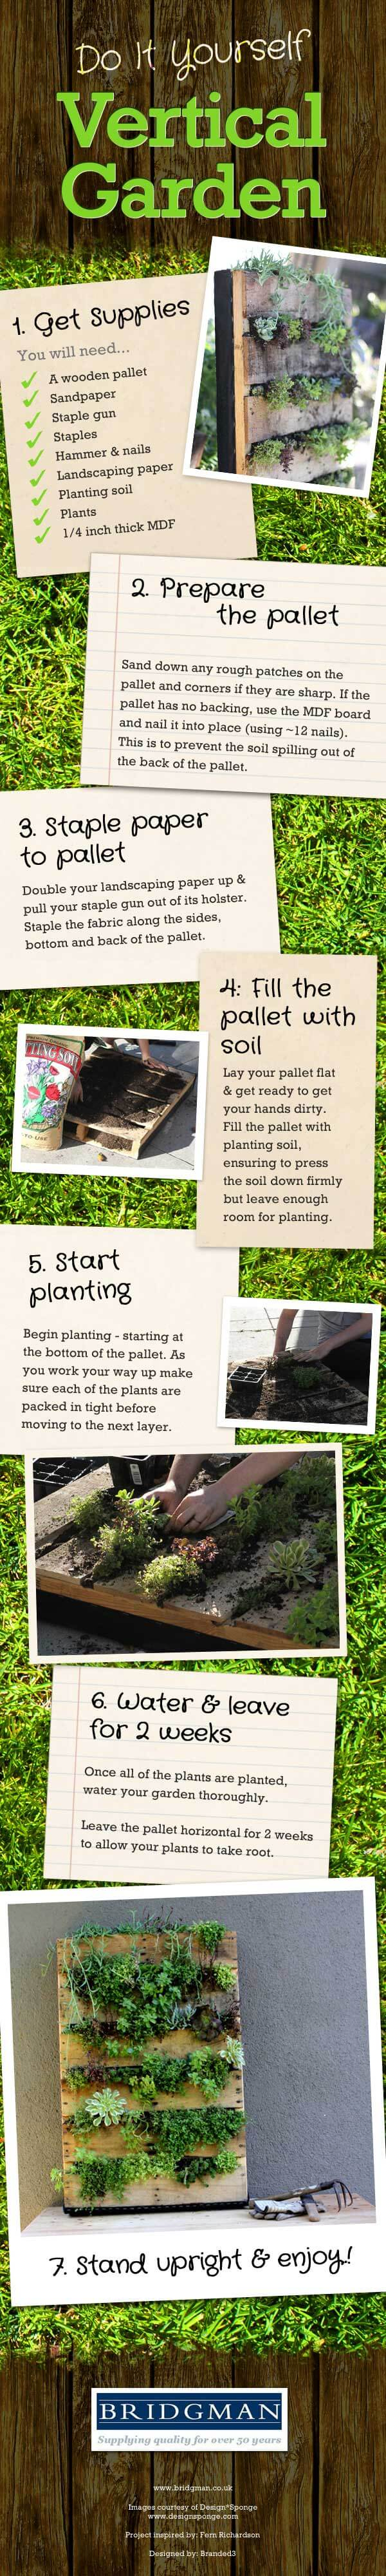 DIY vertical garden wall infographic